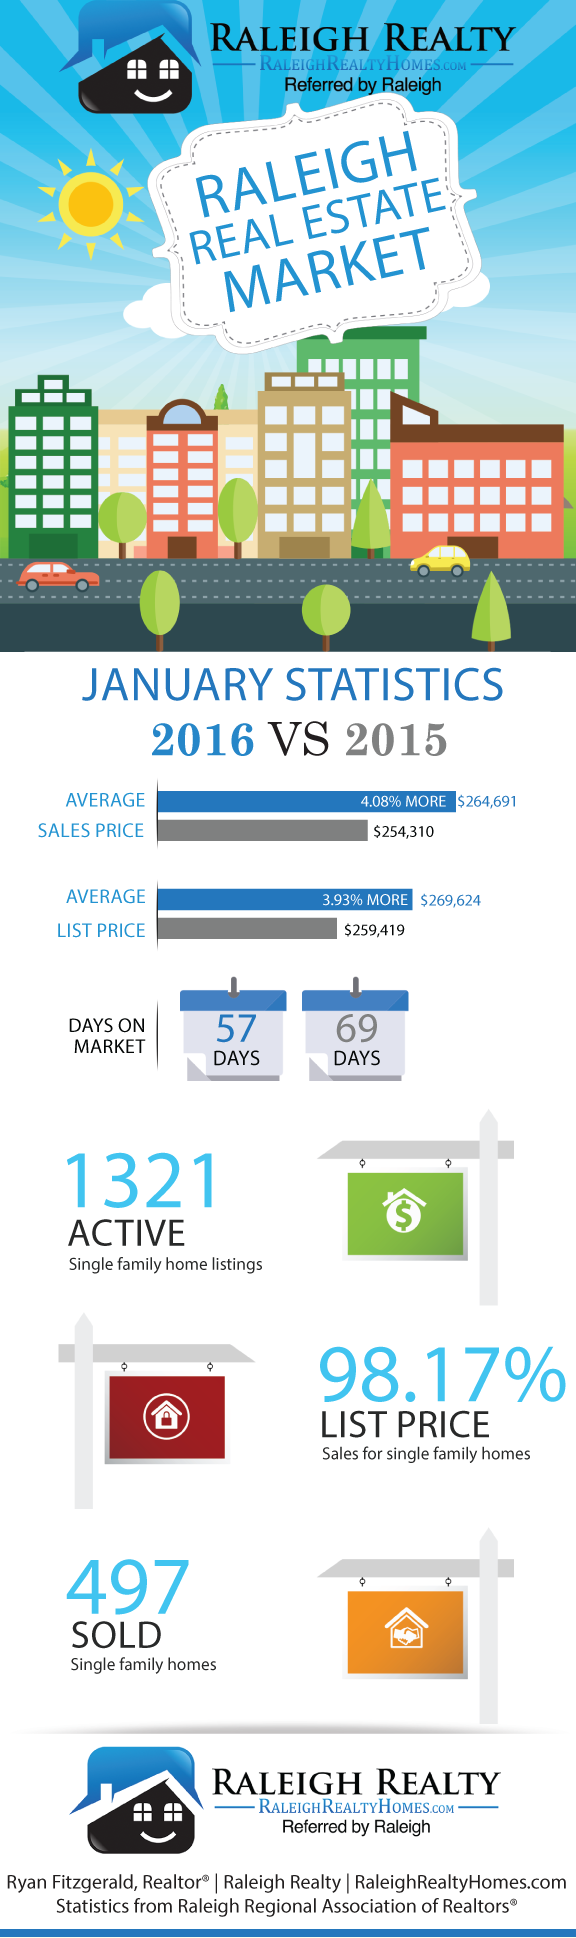 Raleigh Real Estate January 2016 Statistics Infographic